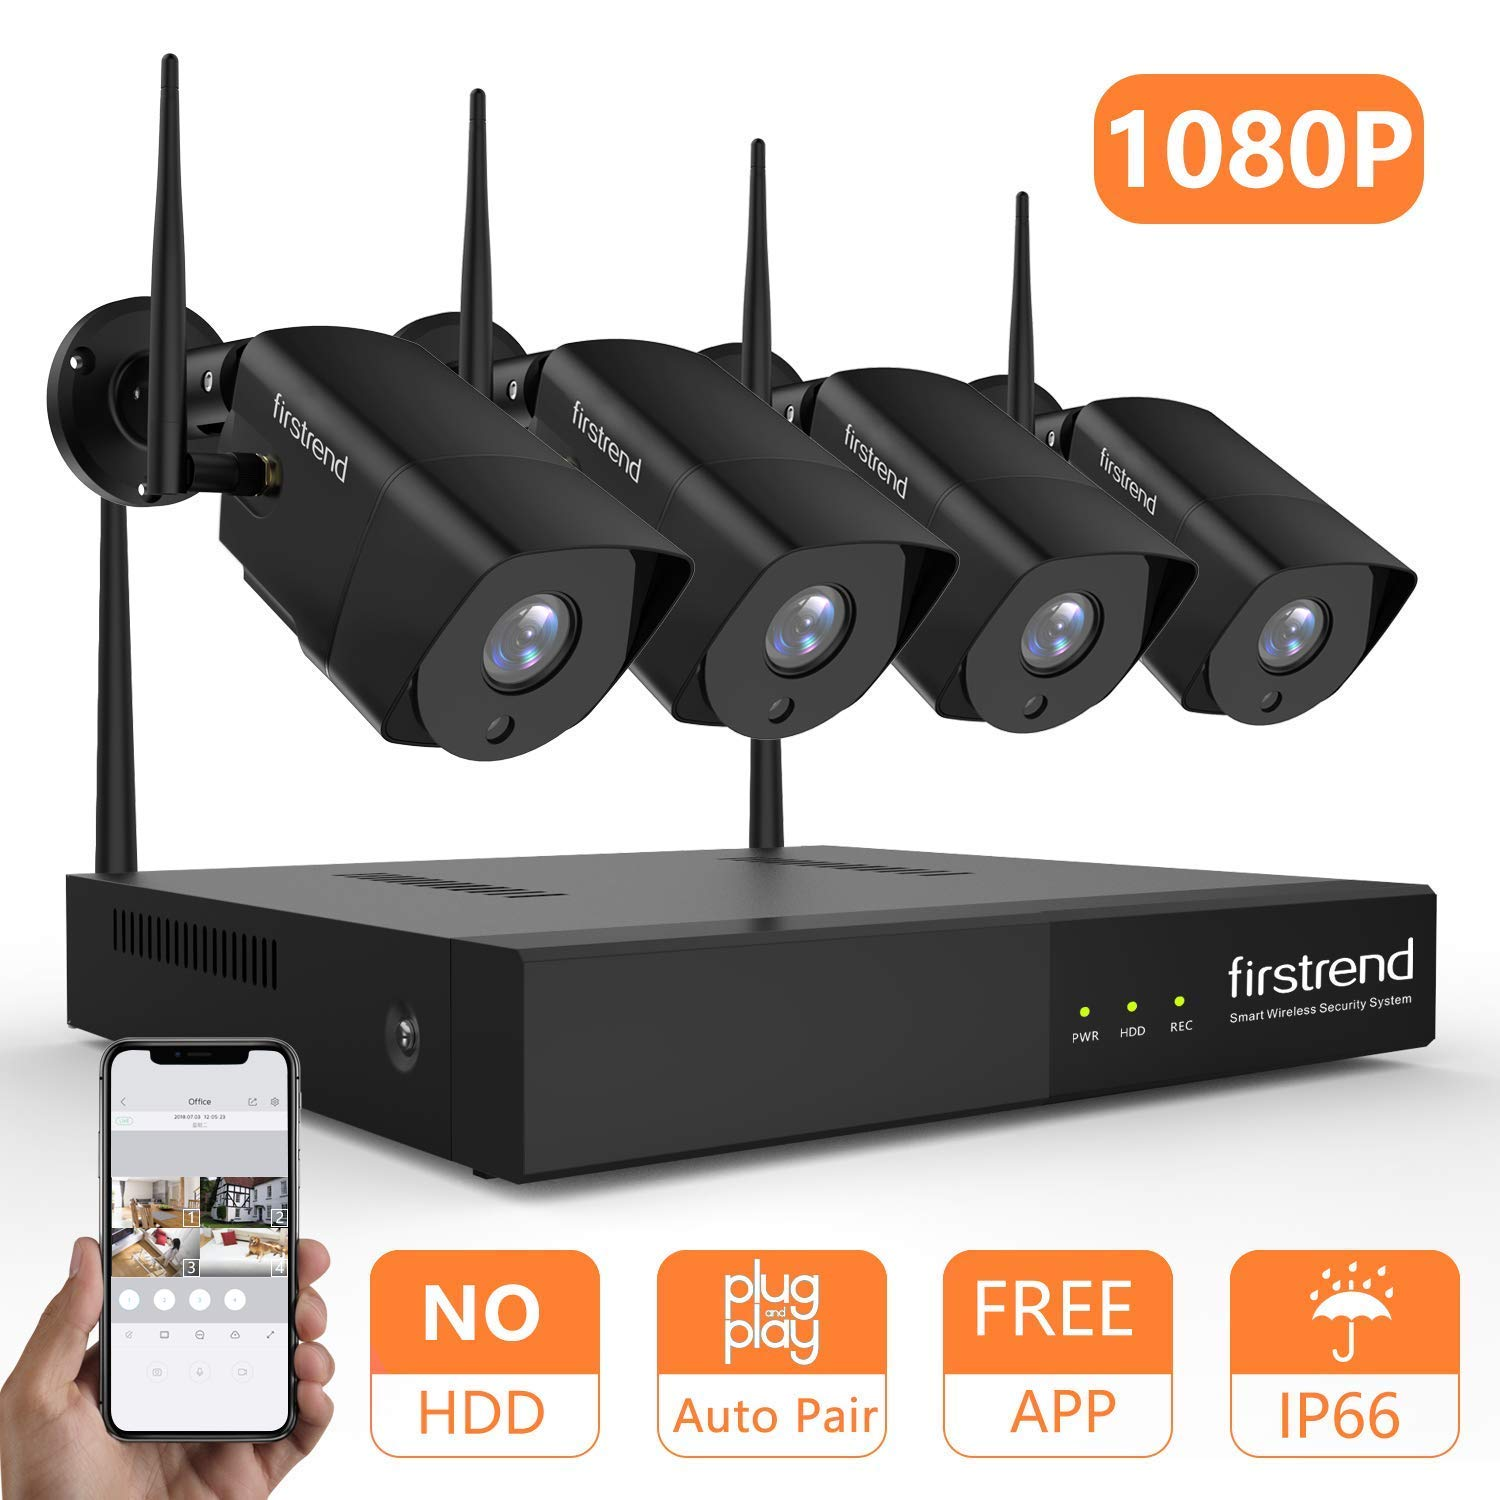 Security Camera System Wireless, Firstrend 8CH 1080P Wireless Security Camera System with 4pcs 1080P HD Security Camera, P2P Camera System with 65ft Night Vision, No Hard Drive[Black]